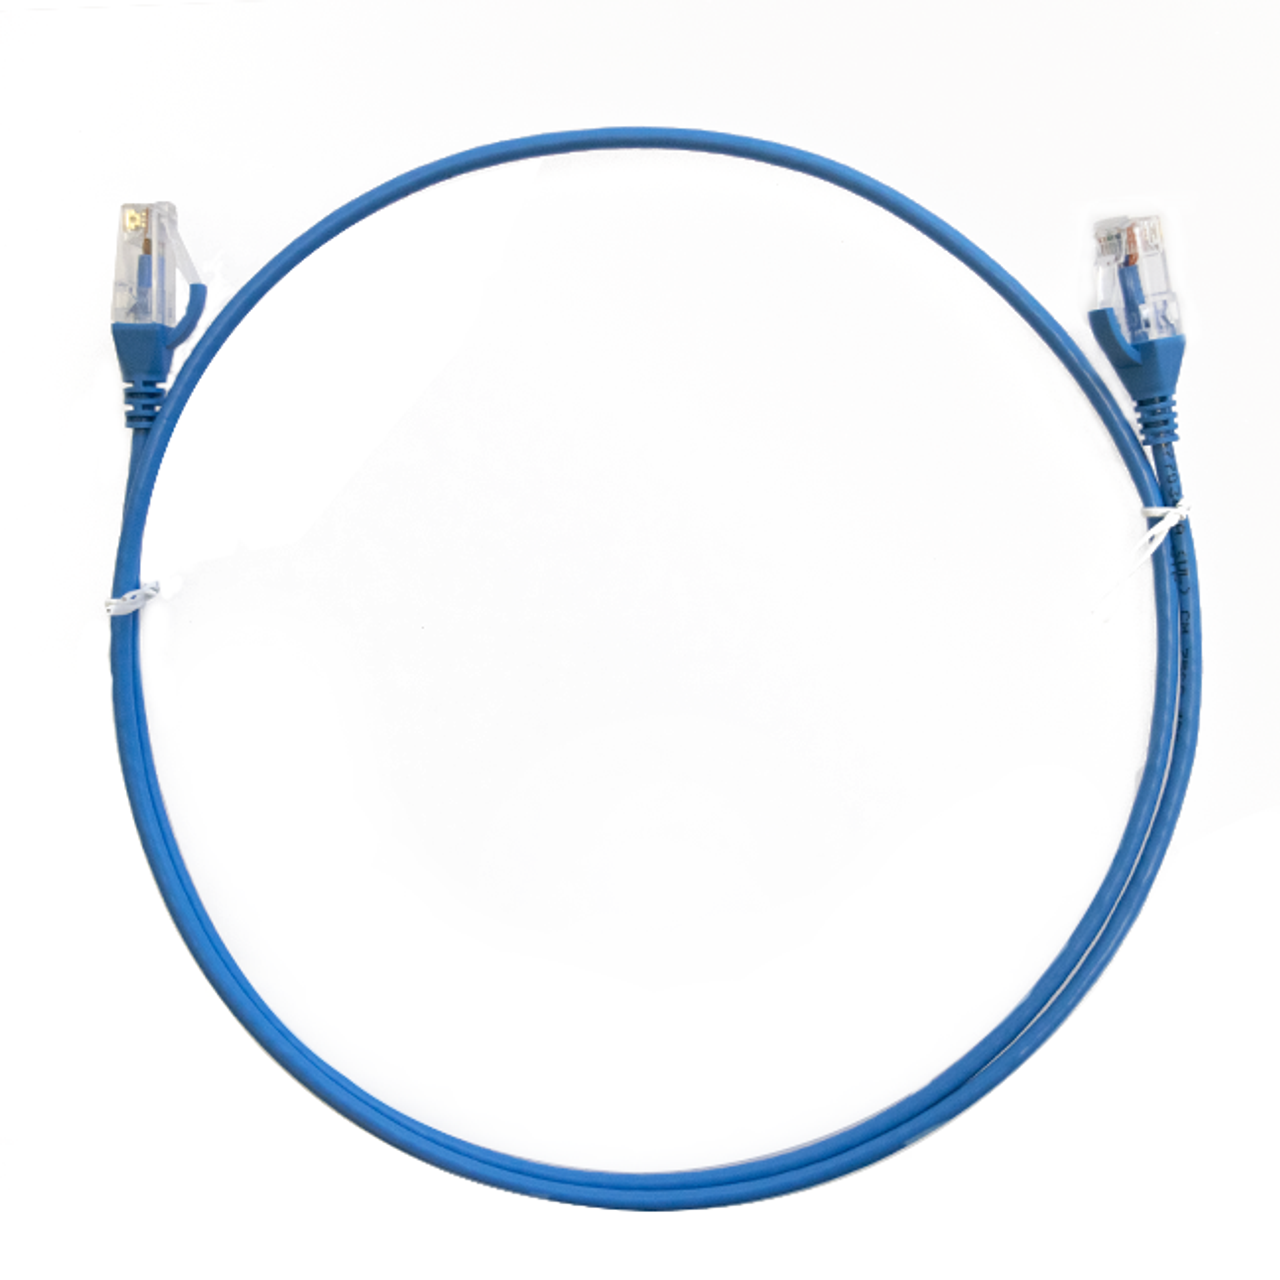 Image for 3m Cat 6 Ultra Thin LSZH Ethernet Network Cable: Blue CX Computer Superstore